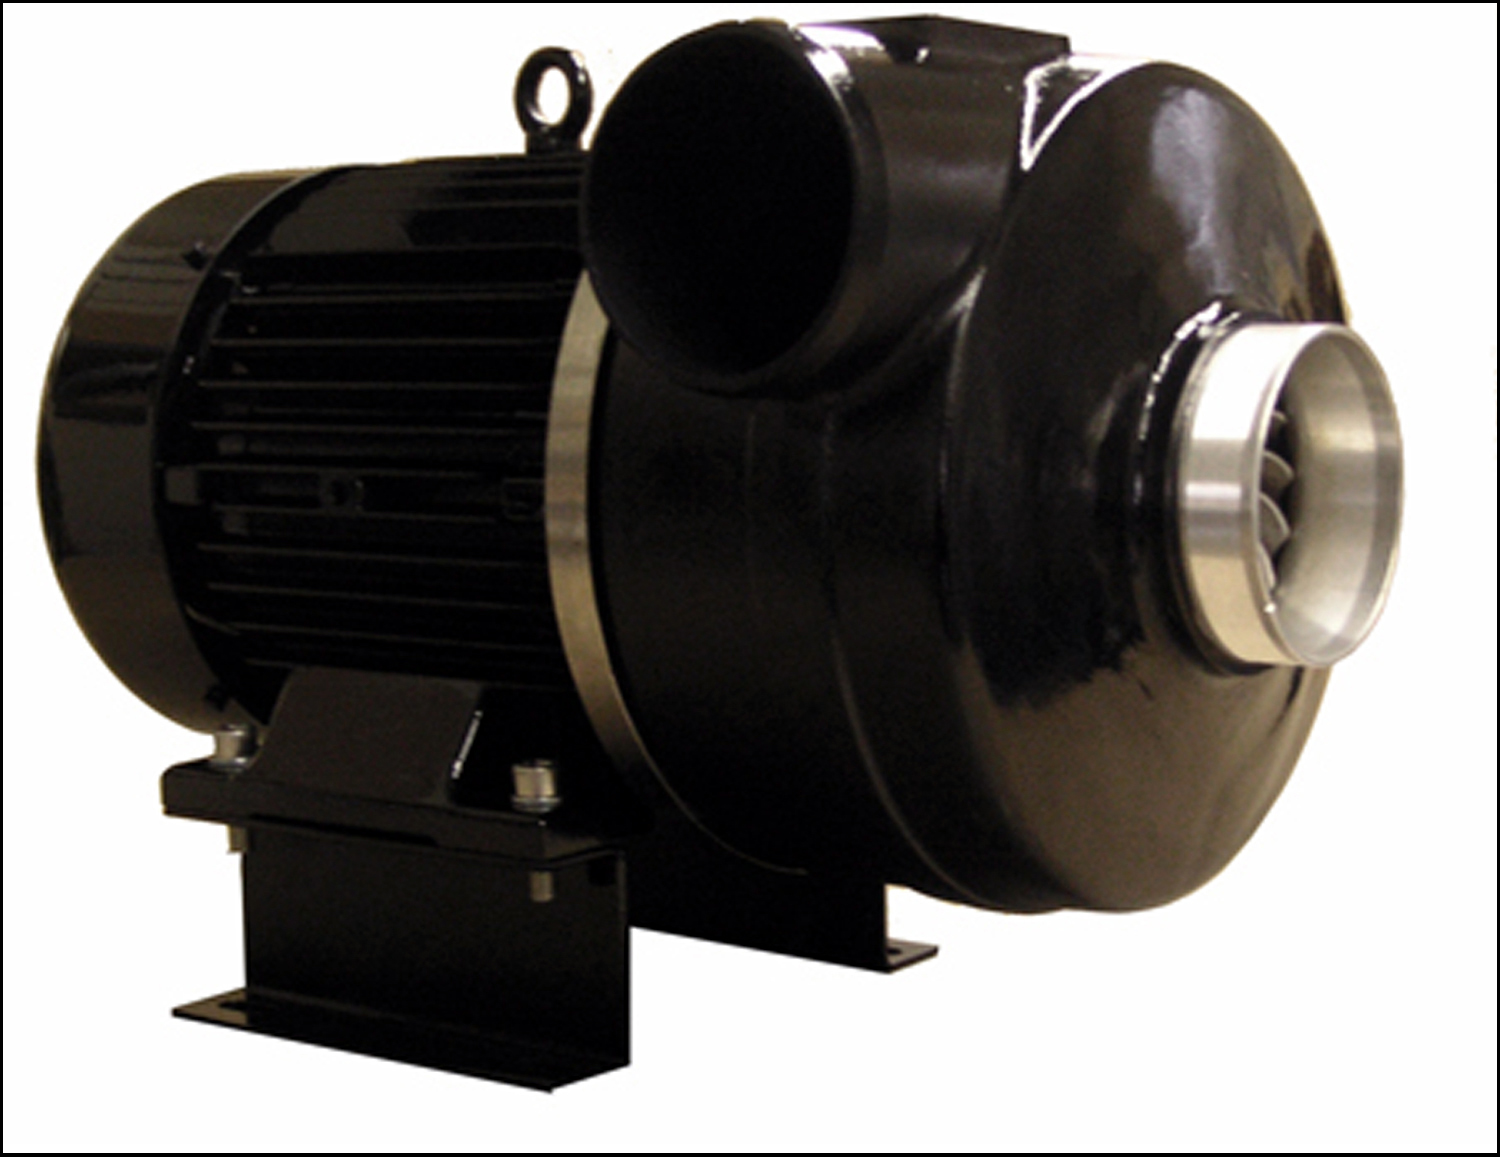 High Speed Blower : Direct drive tm blower and air knife technology improves